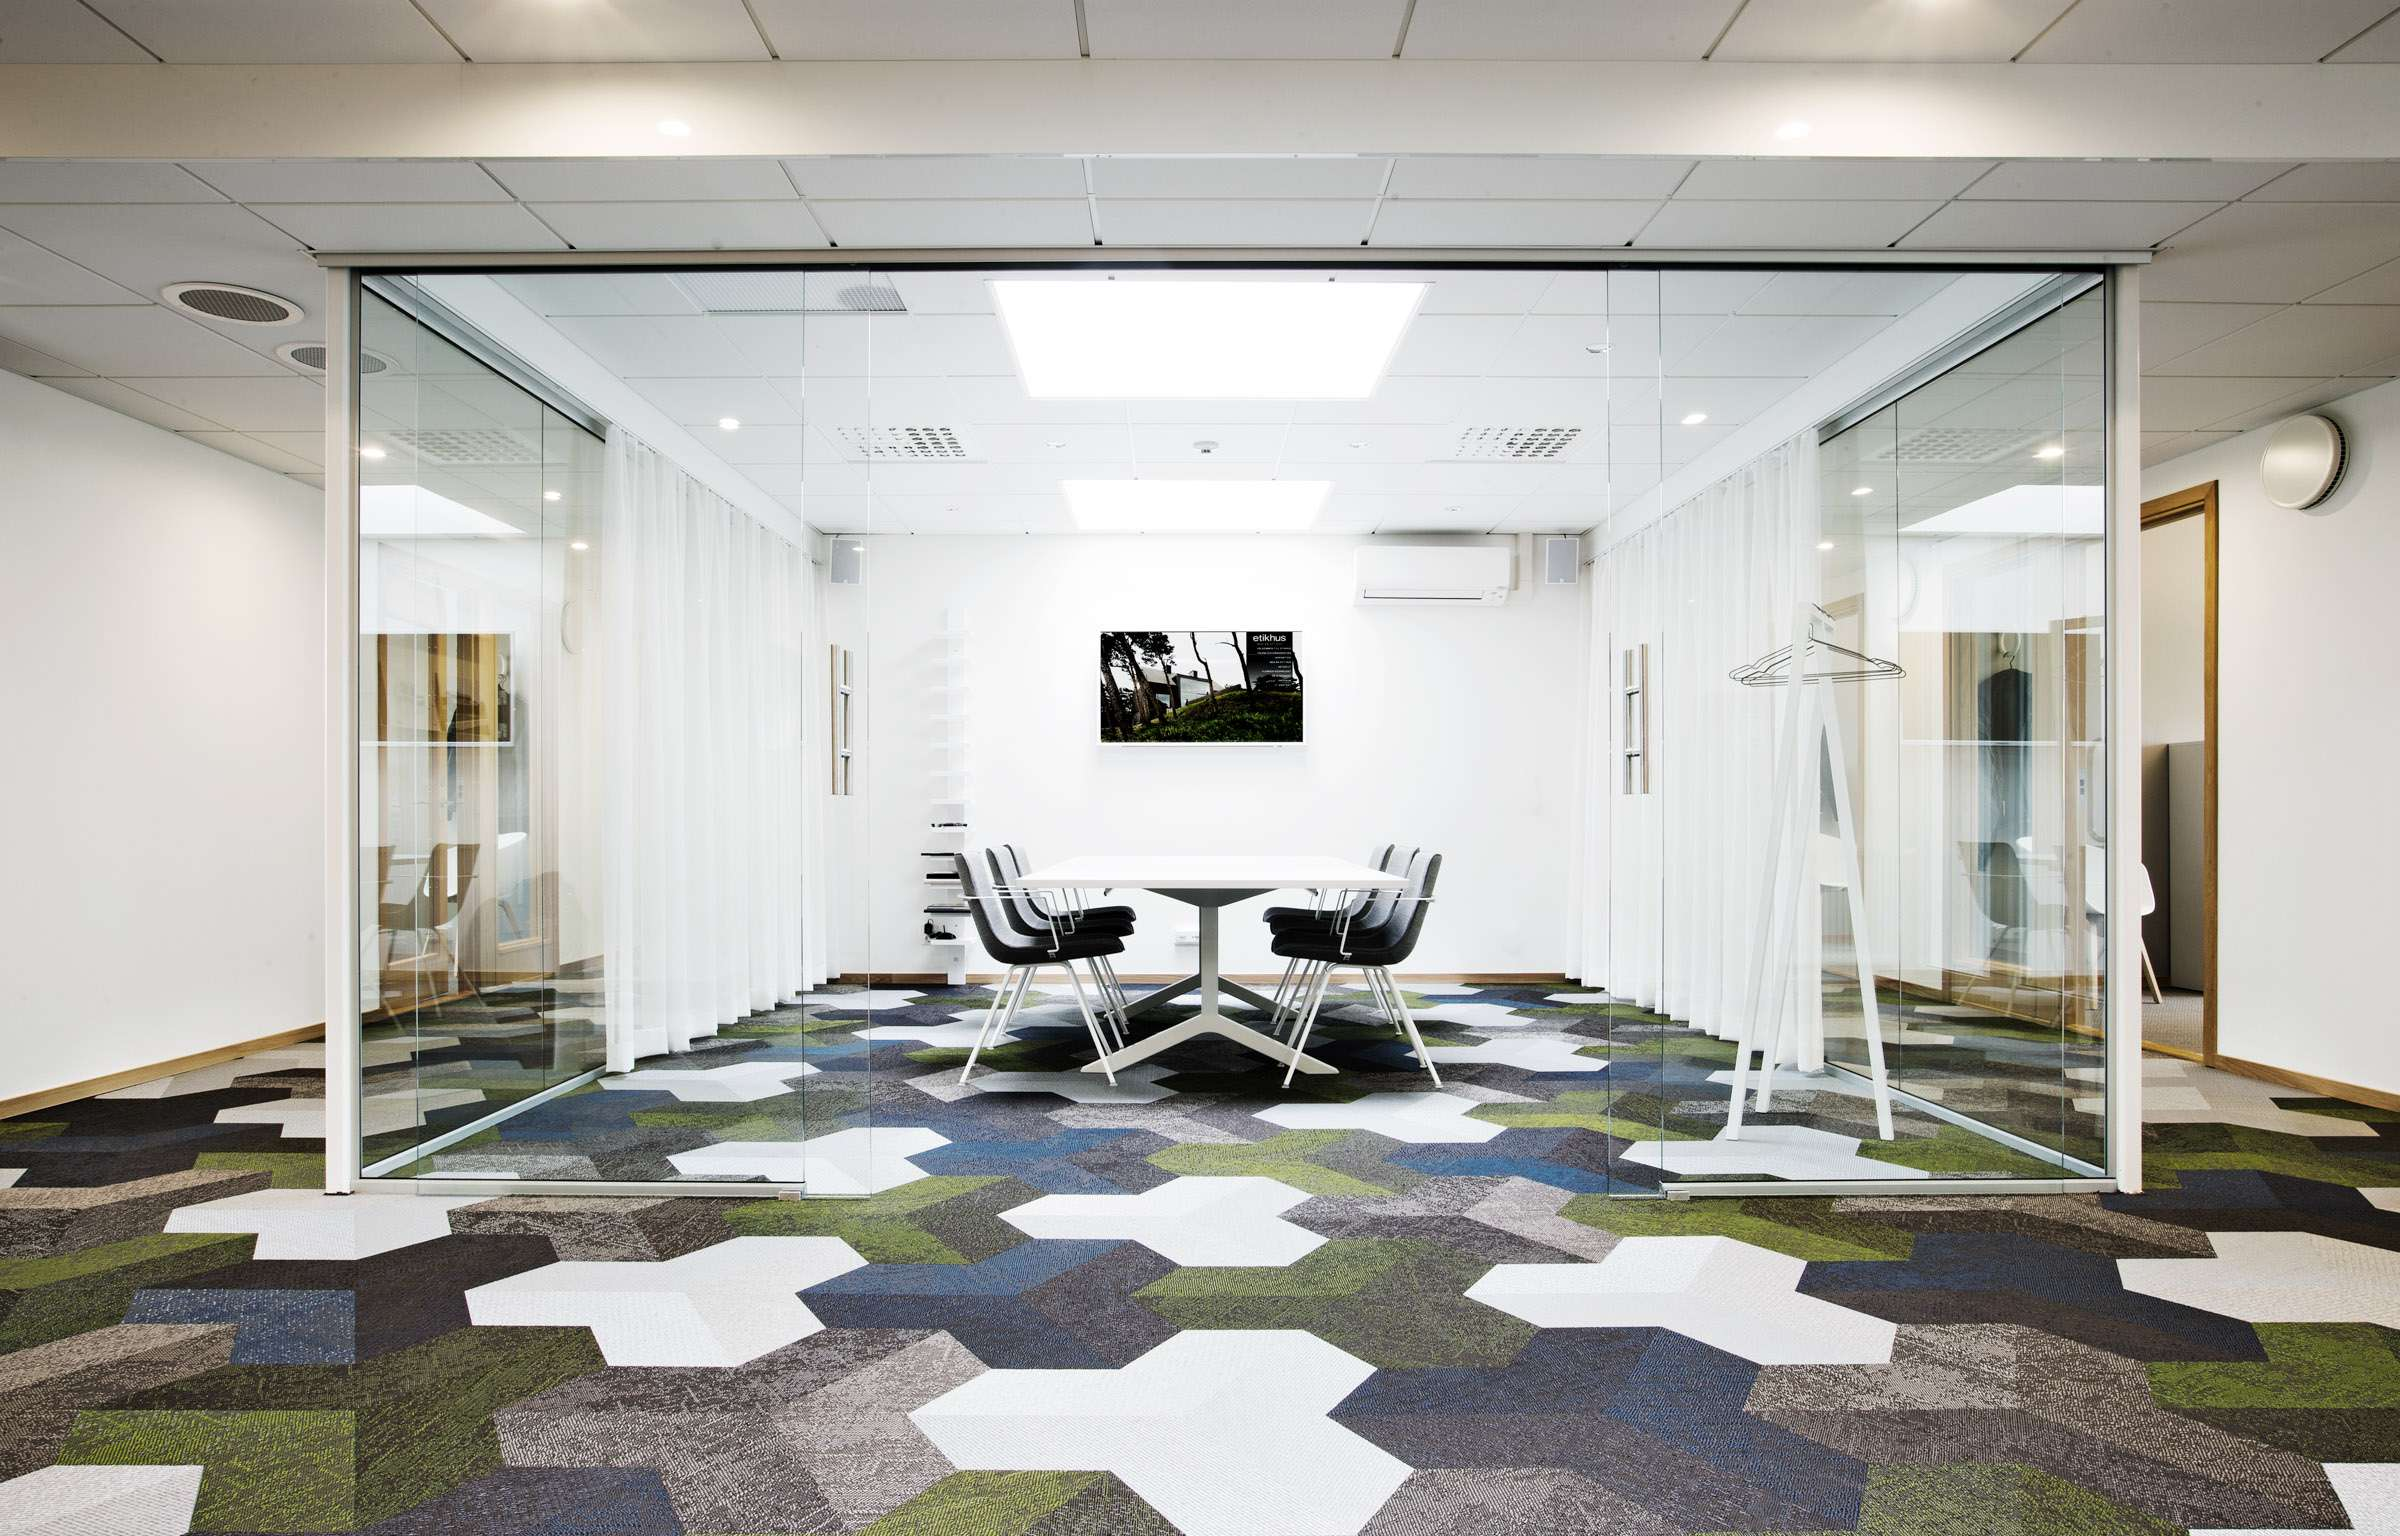 Geometric floor pattern in green, white, blue and gray using Bolon Studio™ tiles in the office of Etikhus in Varberg, Sweden.